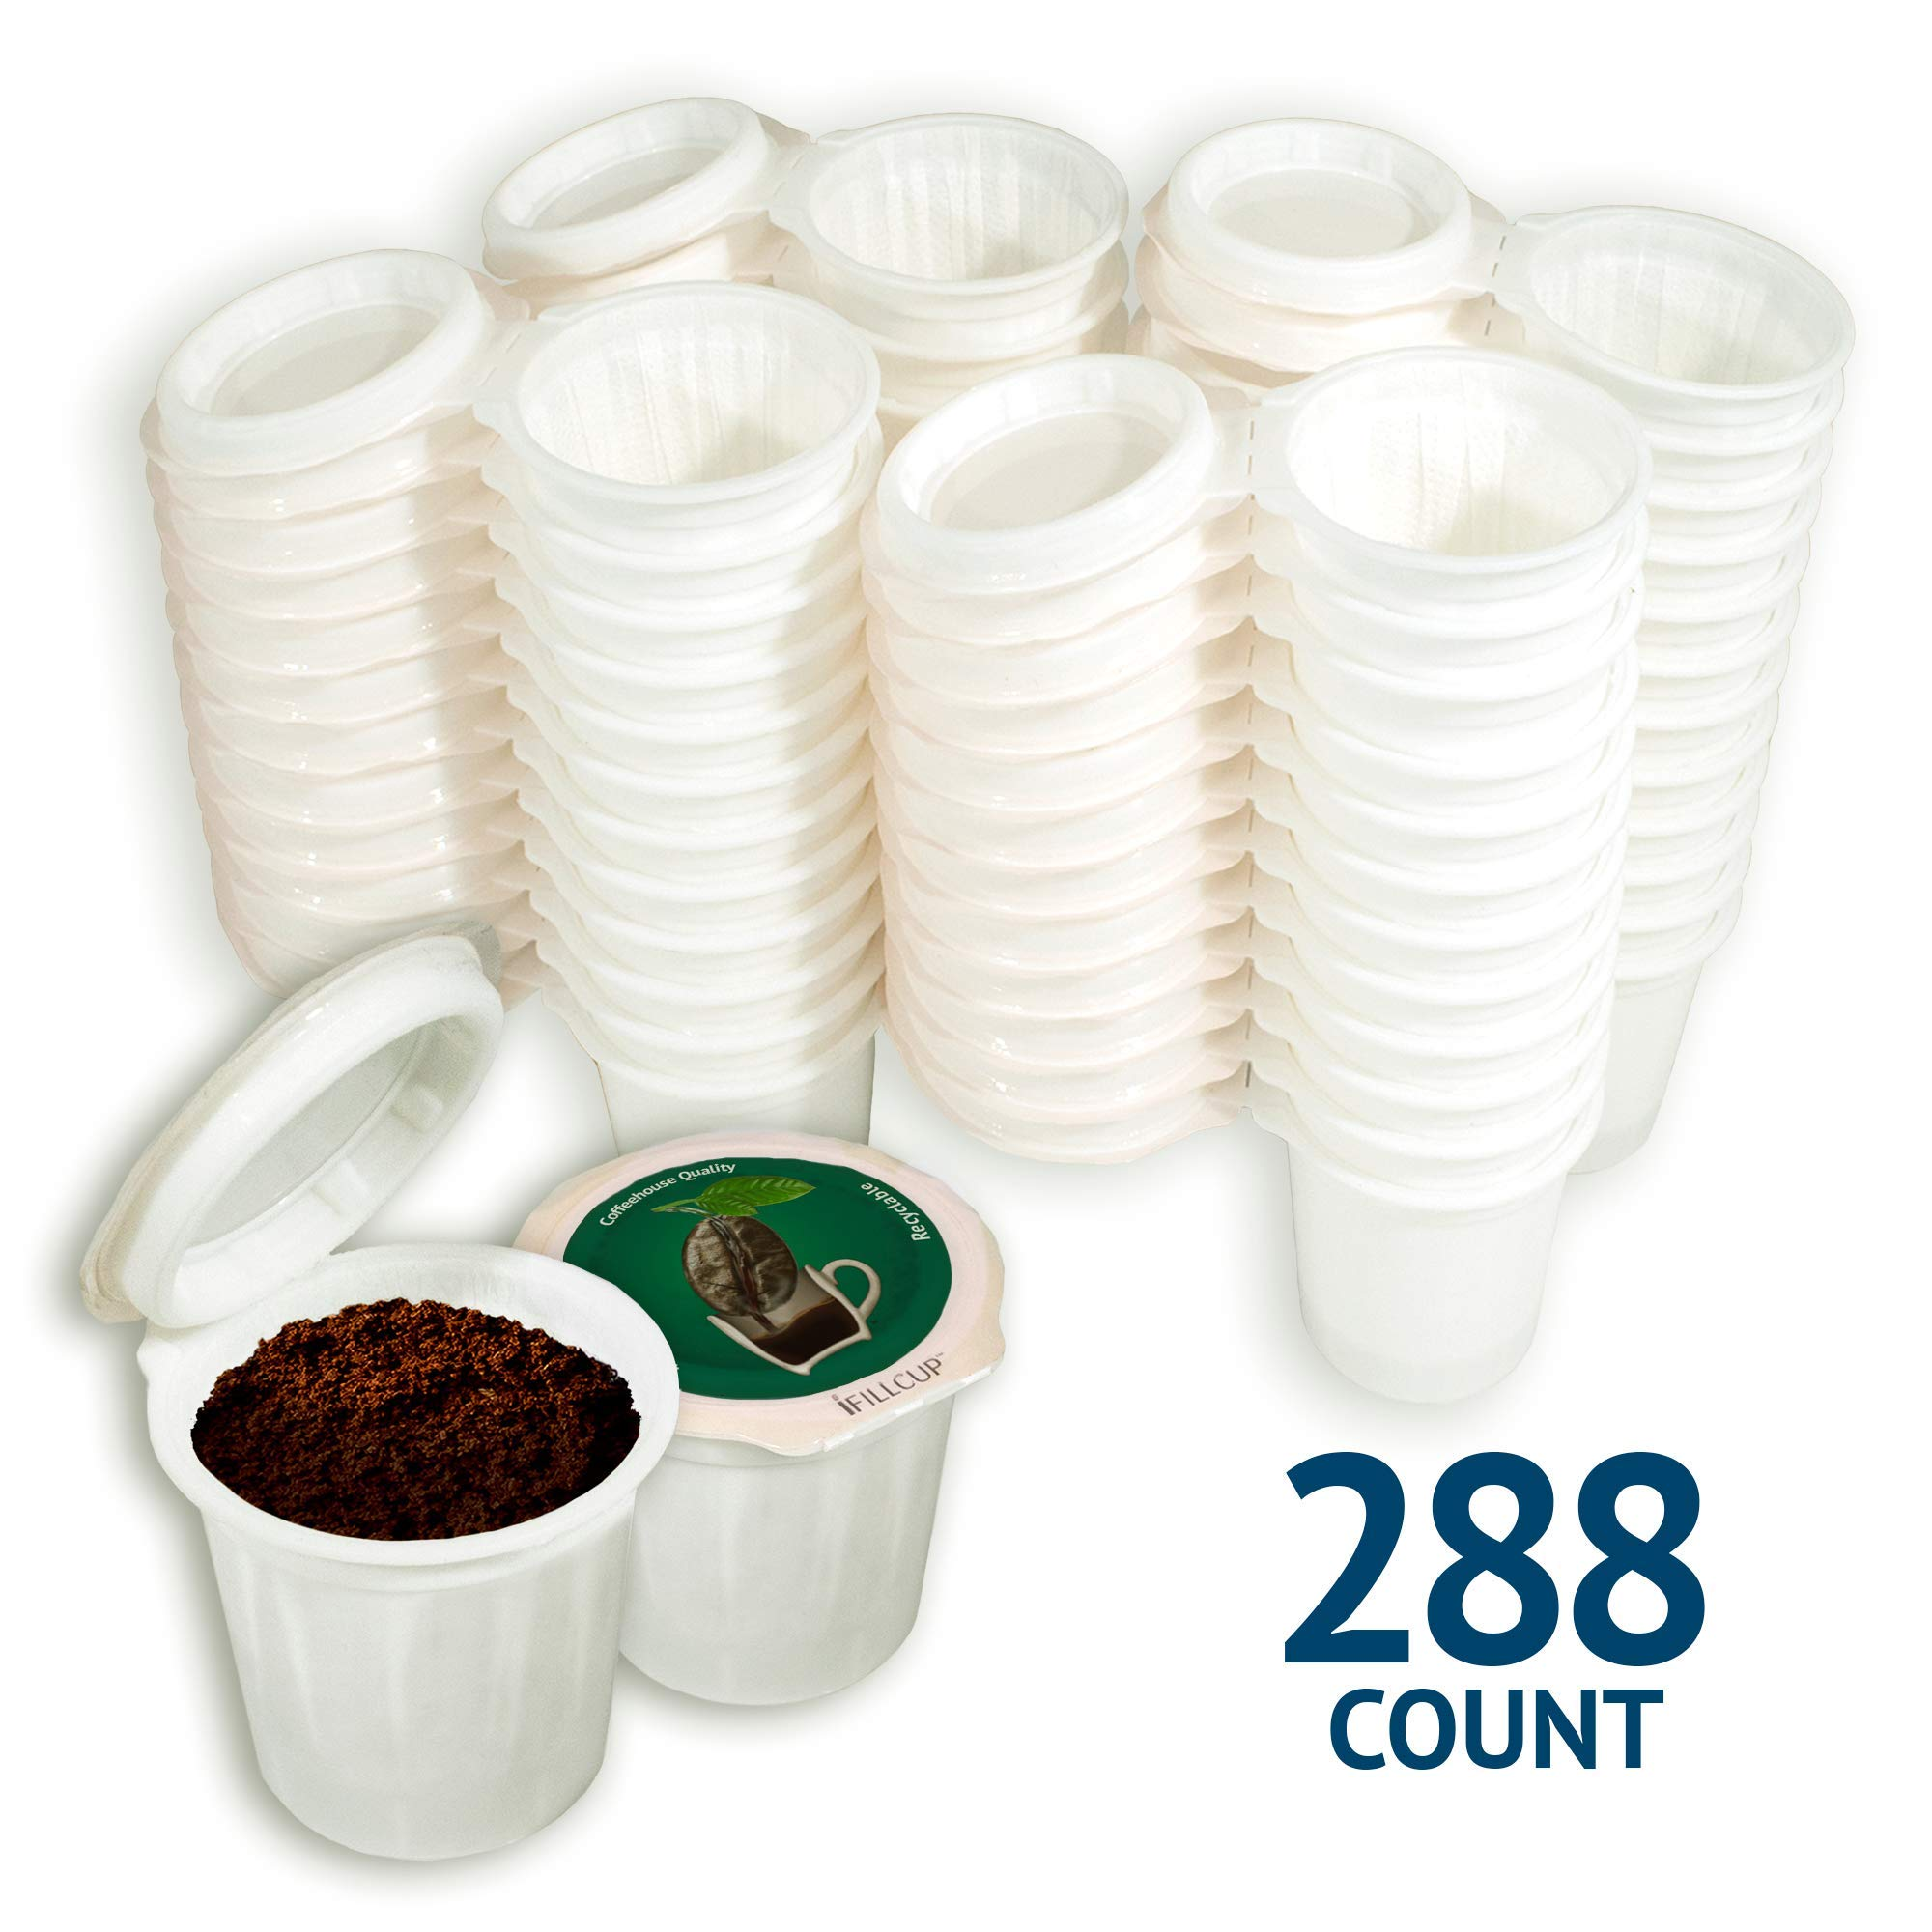 iFillCup pre-assembled Single Serve, Green, fill your own Pods. 100% recyclable for use in all k cup brewers including 1.0 & 2.0 Keurig. 288 iFill Cup airtight seal in freshness pods. by iFillCup